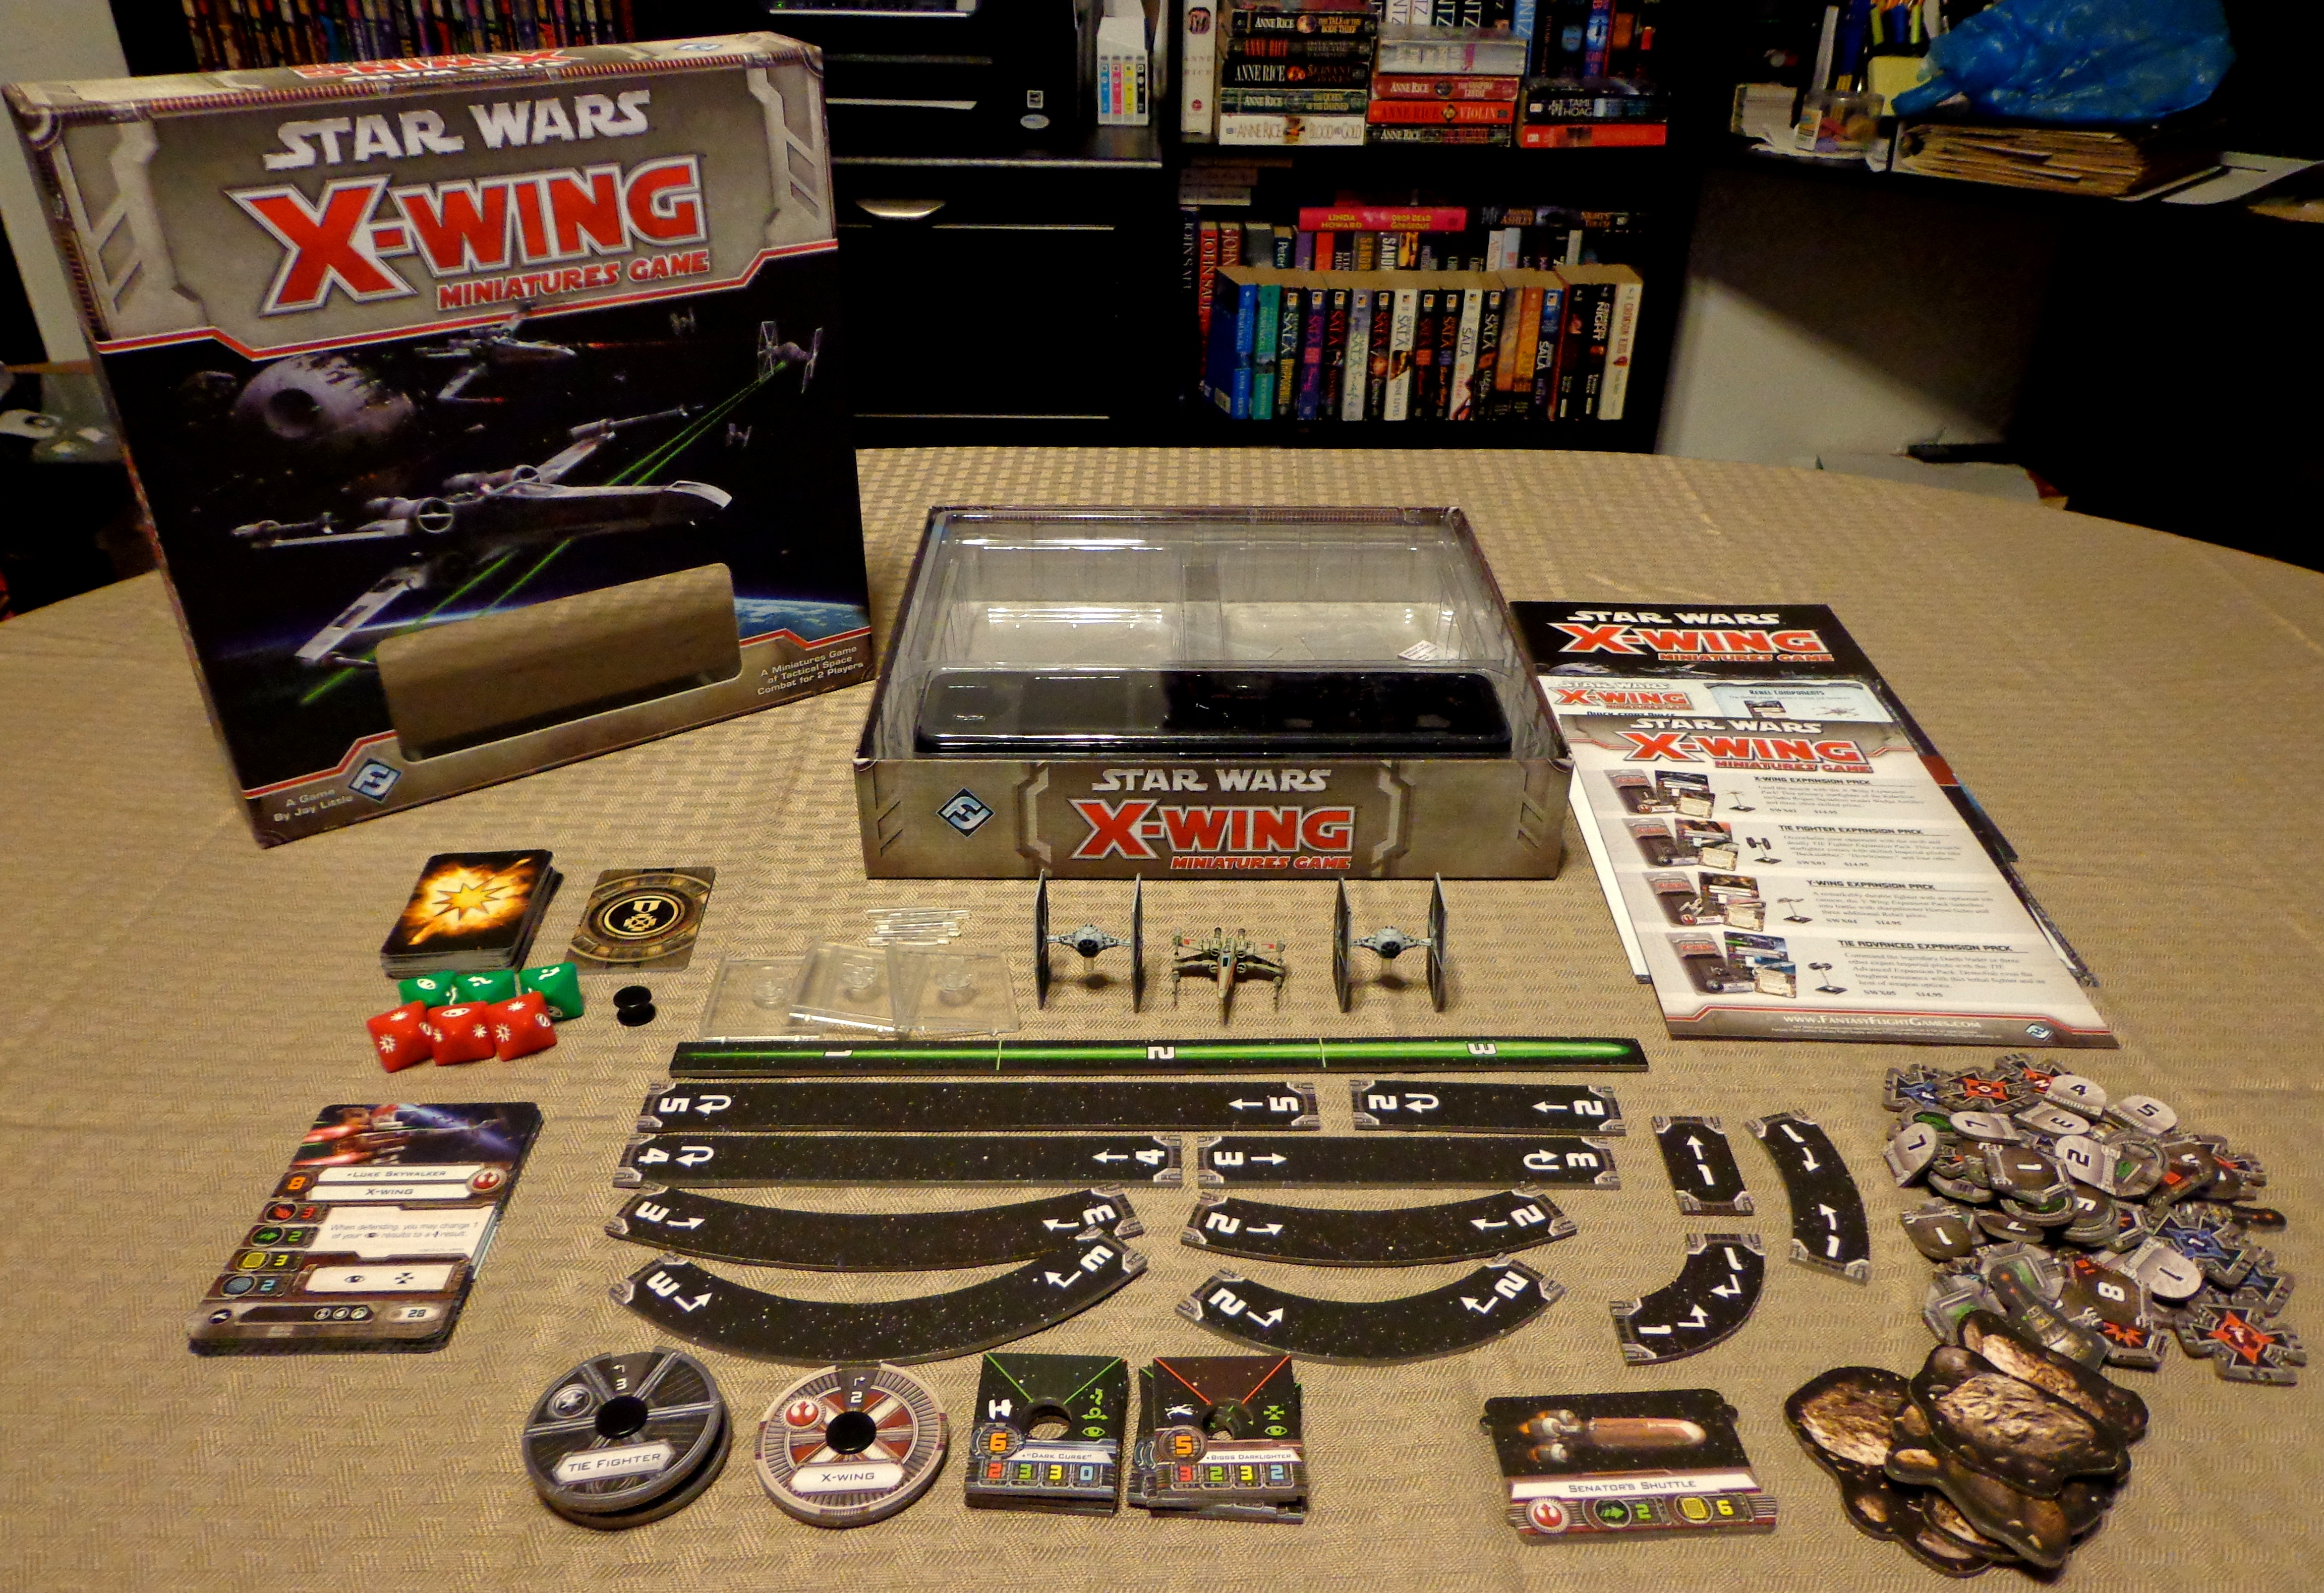 Star Wars X-Wing - Fair Game